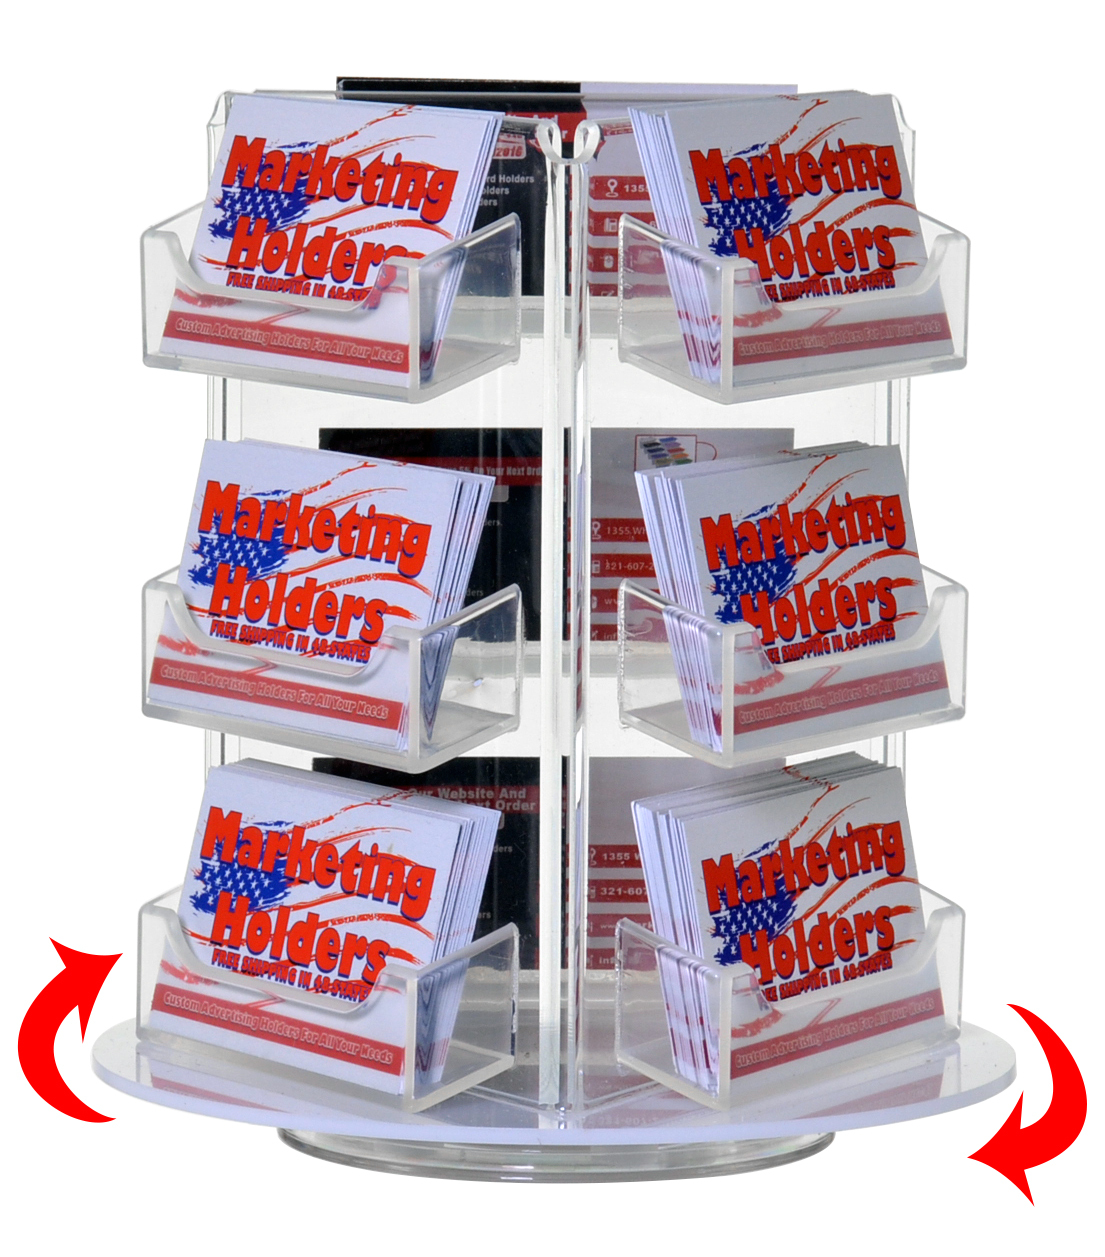 Rotating Business Card and Gift Card Holders